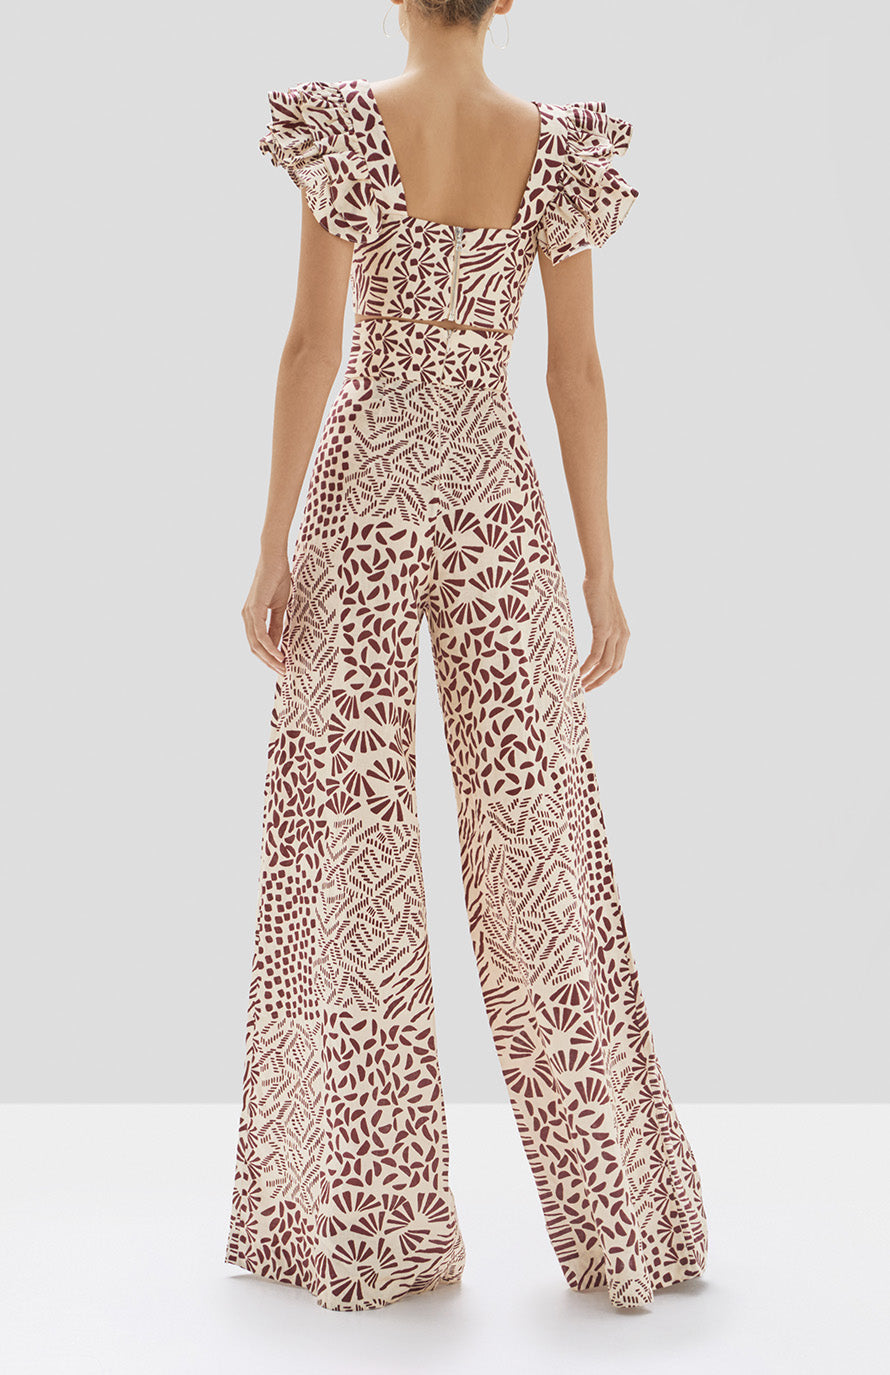 Alexis Verna Top and Neassa Pant in Burgundy Abstract from Pre Spring 2020 Collection - Rear View